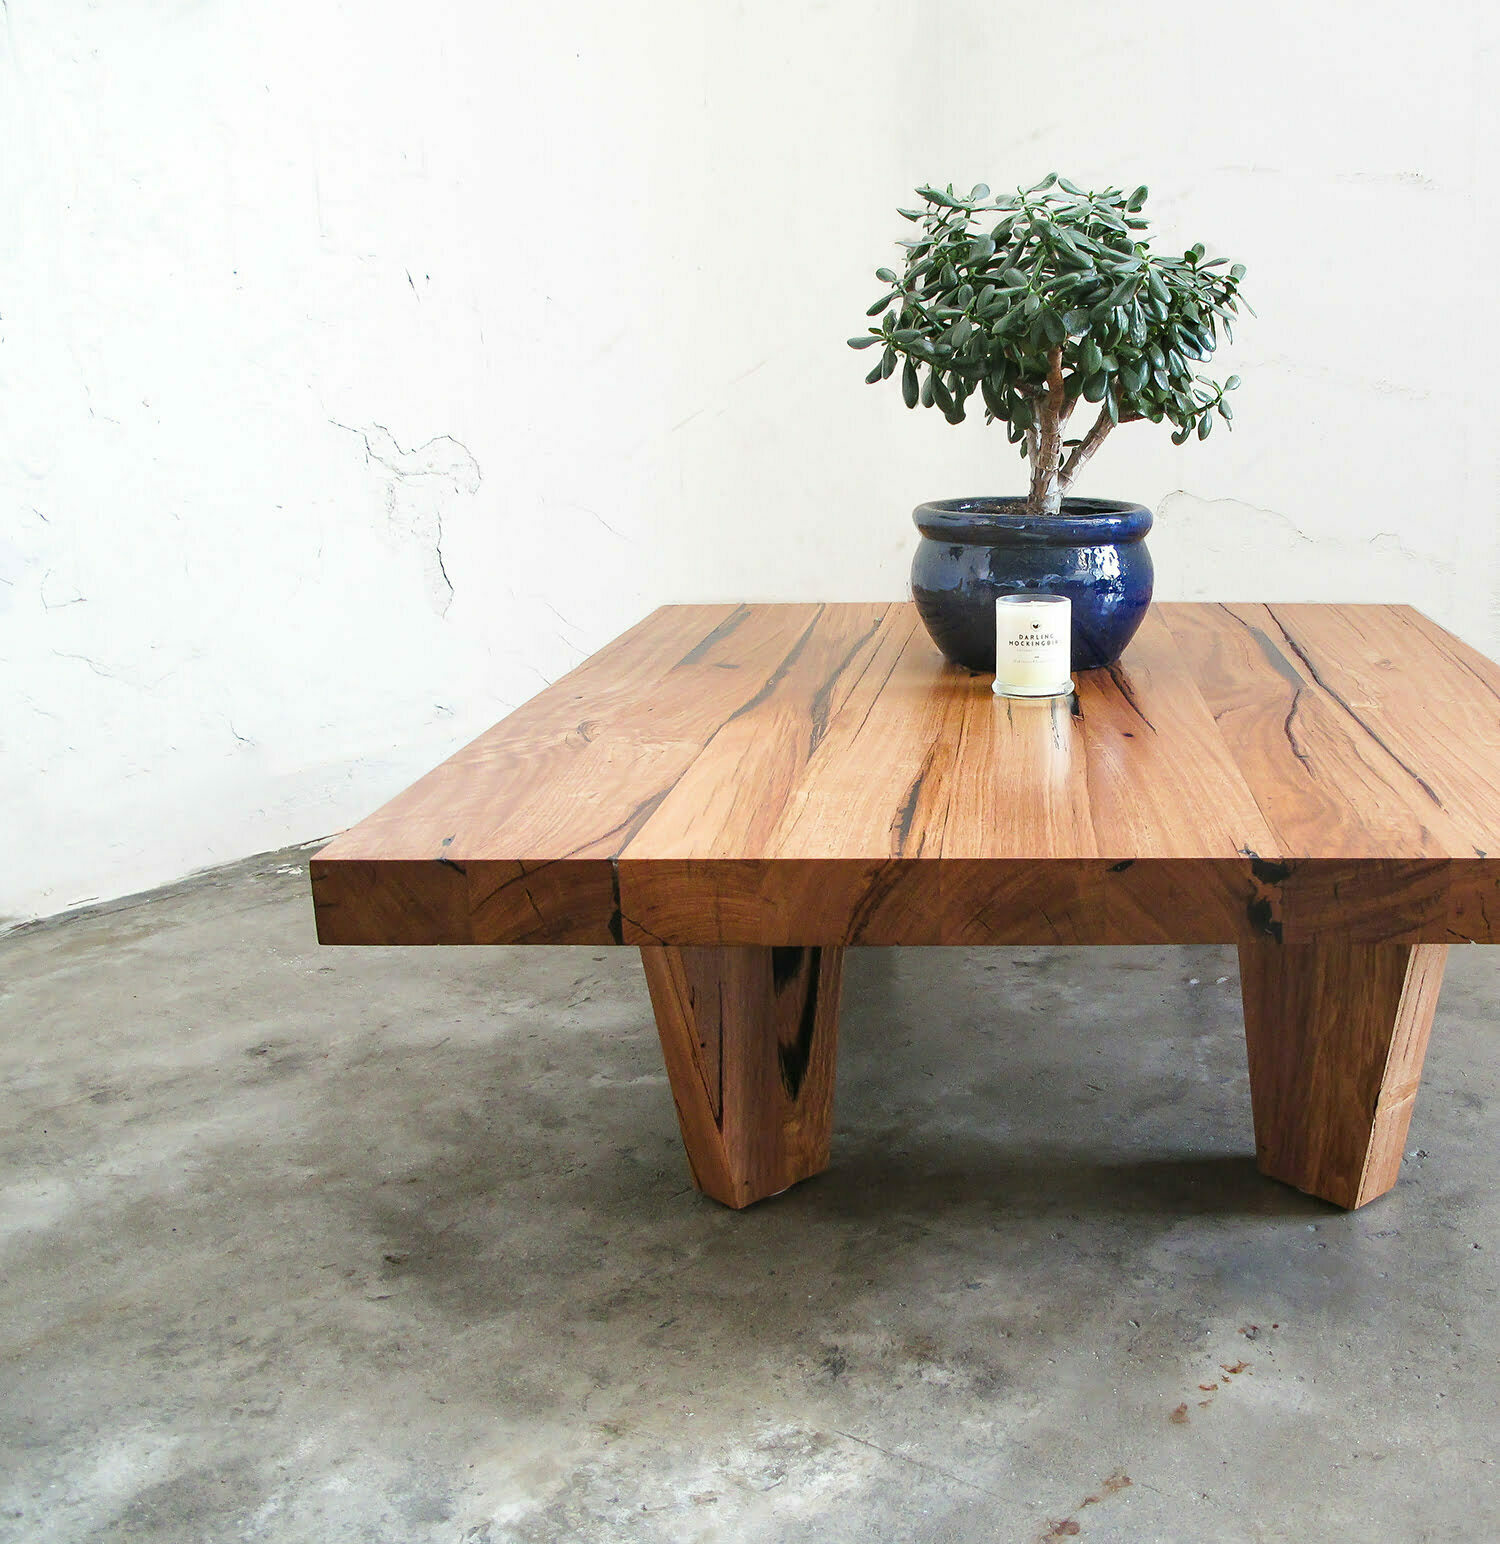 Astonishing Low Rider Coffee Table Recycled Timber Furniture Melbourne Download Free Architecture Designs Scobabritishbridgeorg